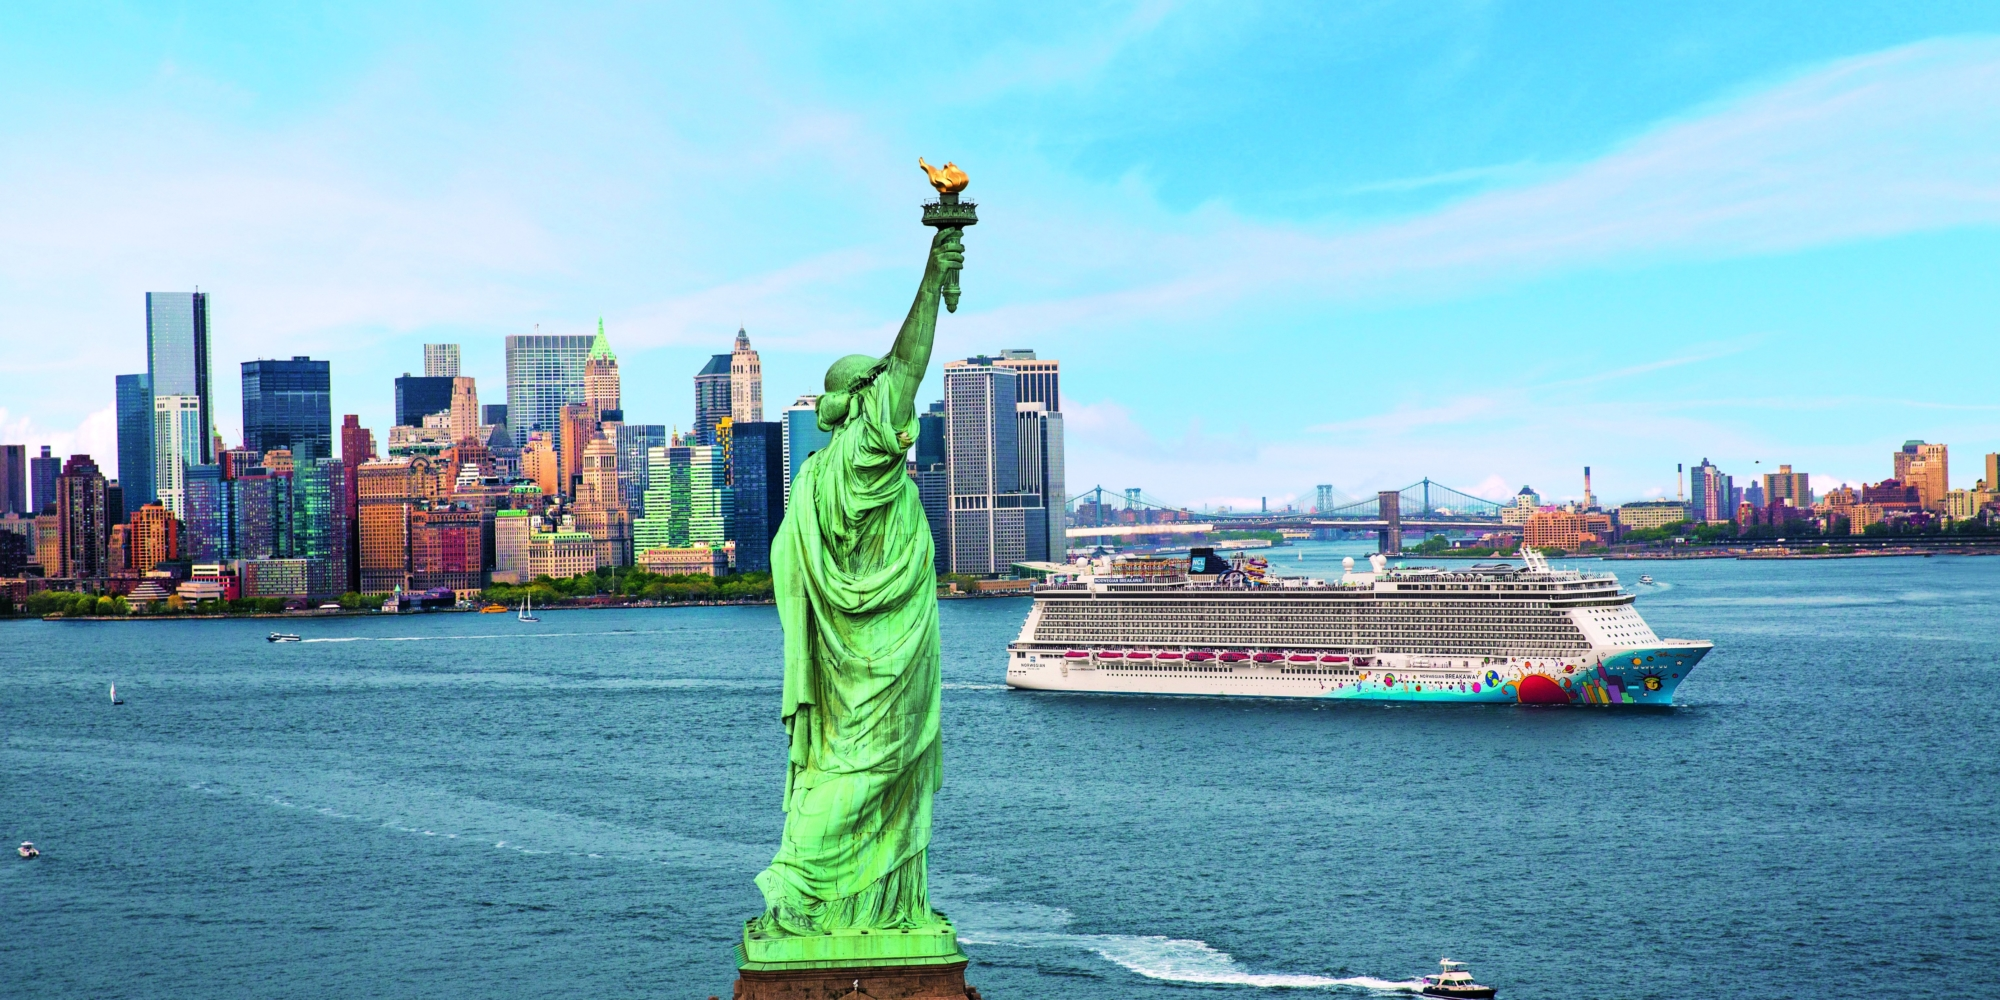 ncl_Brkwy_Aerials_Statue_Lbrty